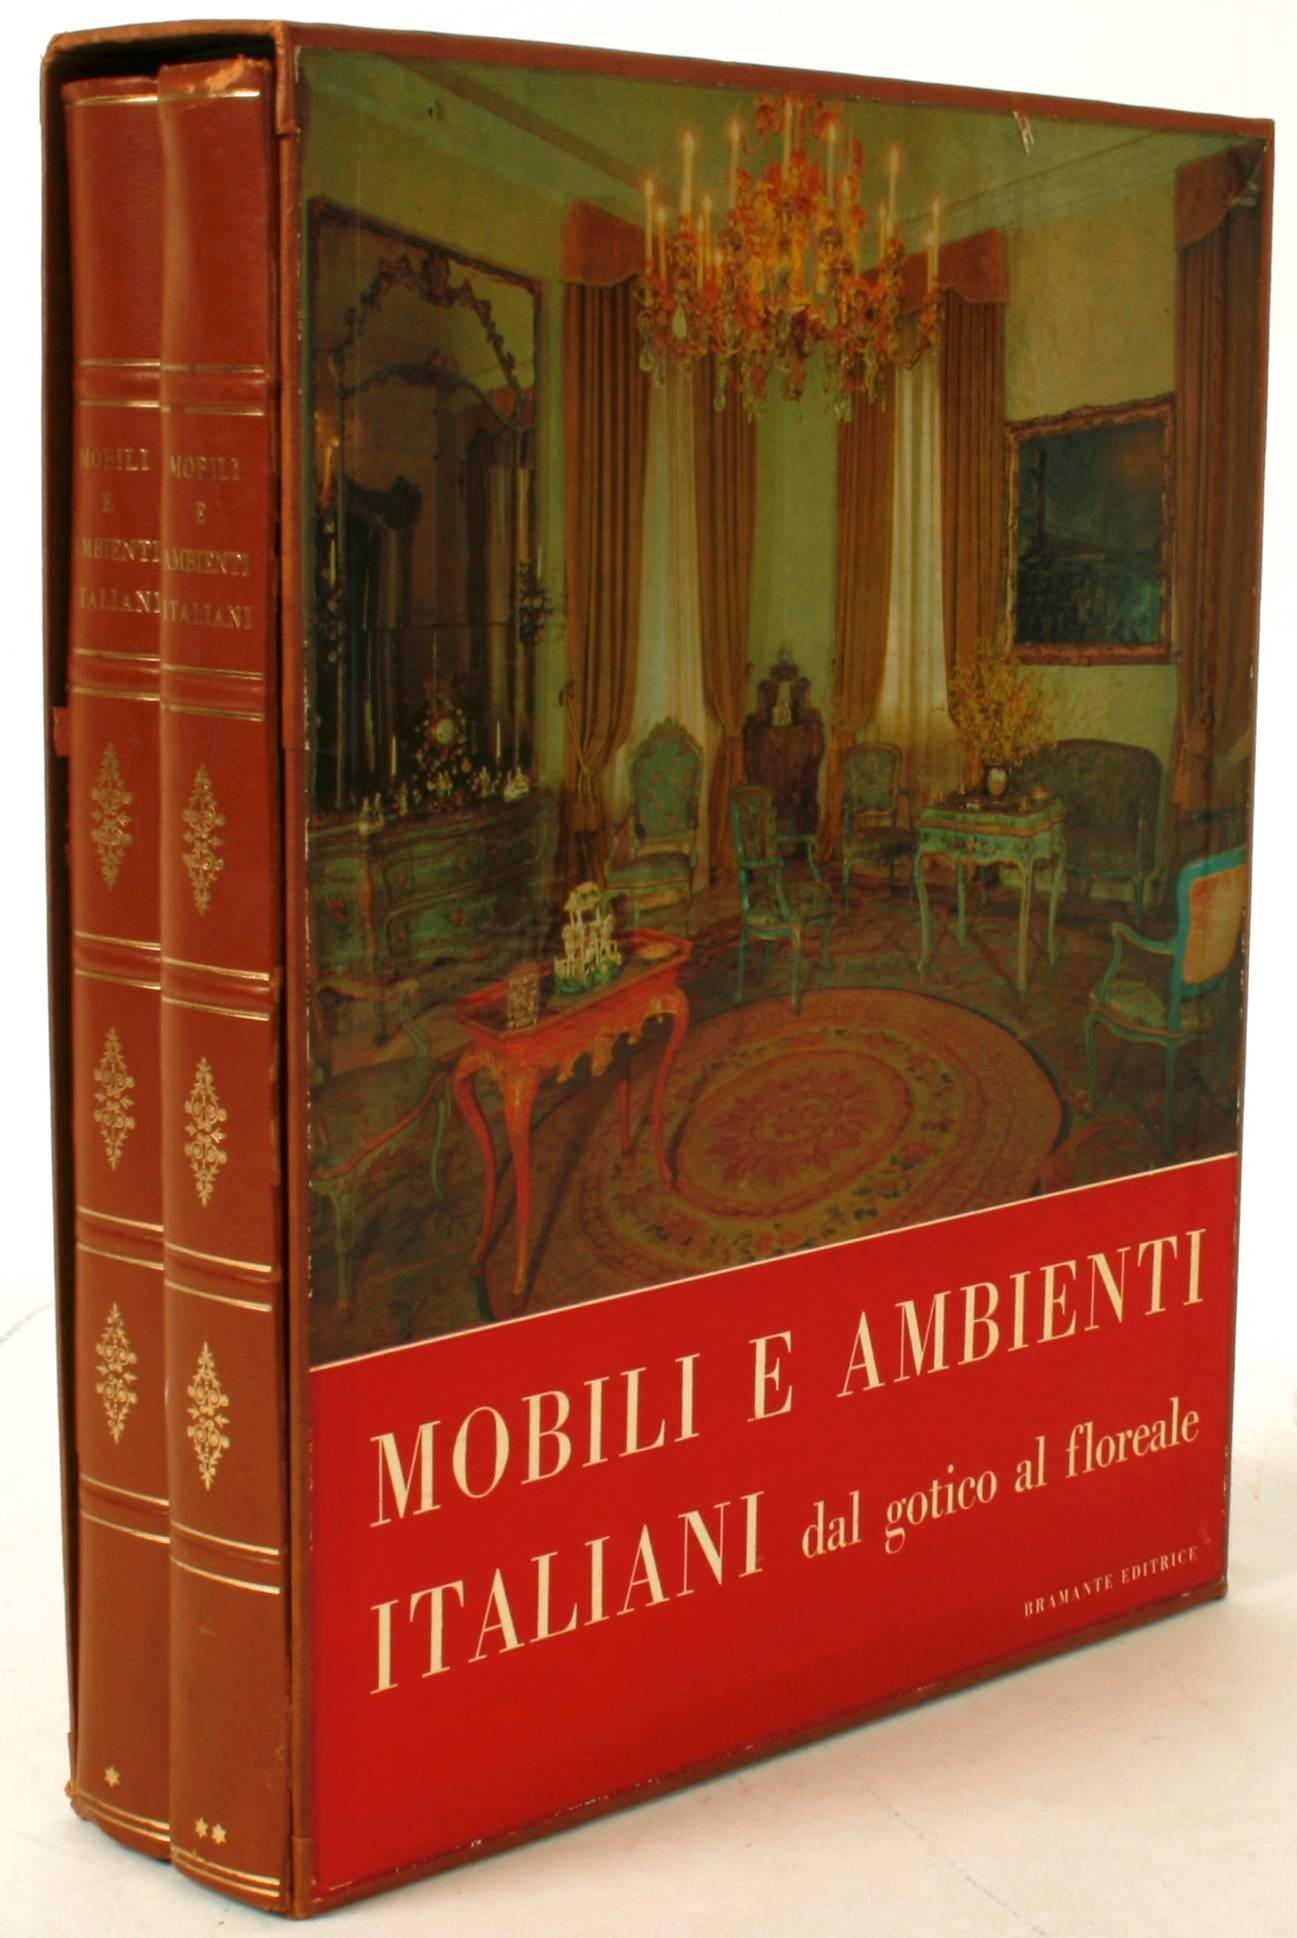 Mobili In Stile Gotico italian furniture and interiors from gothic to floreale, first edition